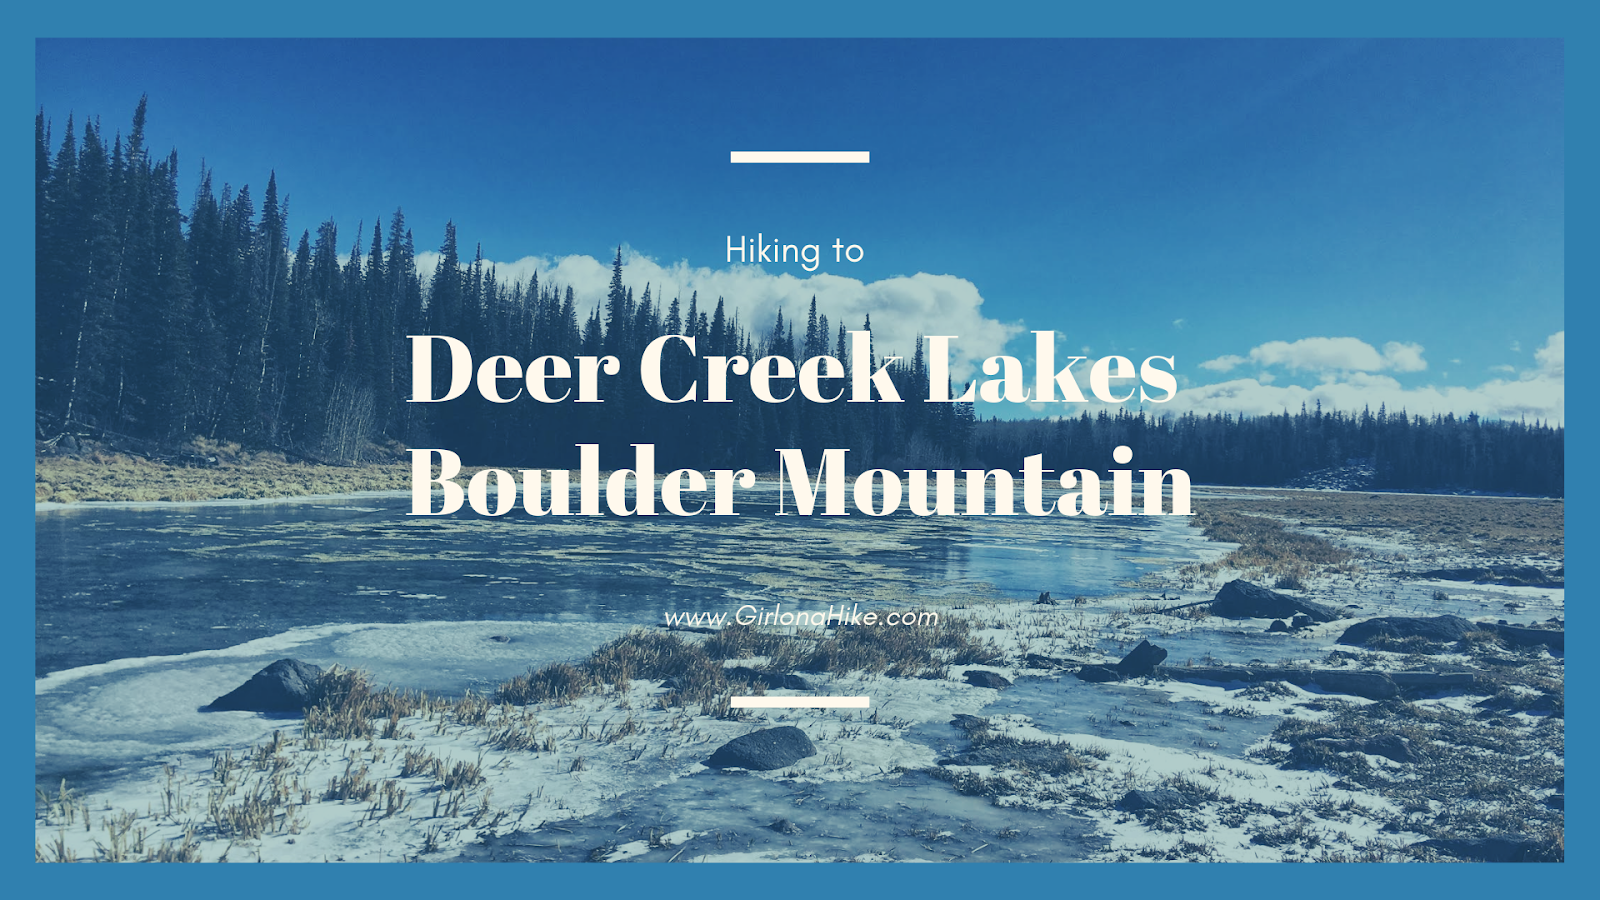 Hiking to Deer Creek Lakes, Boulder Mountain, Hiking on Boulder Mountain, Utah